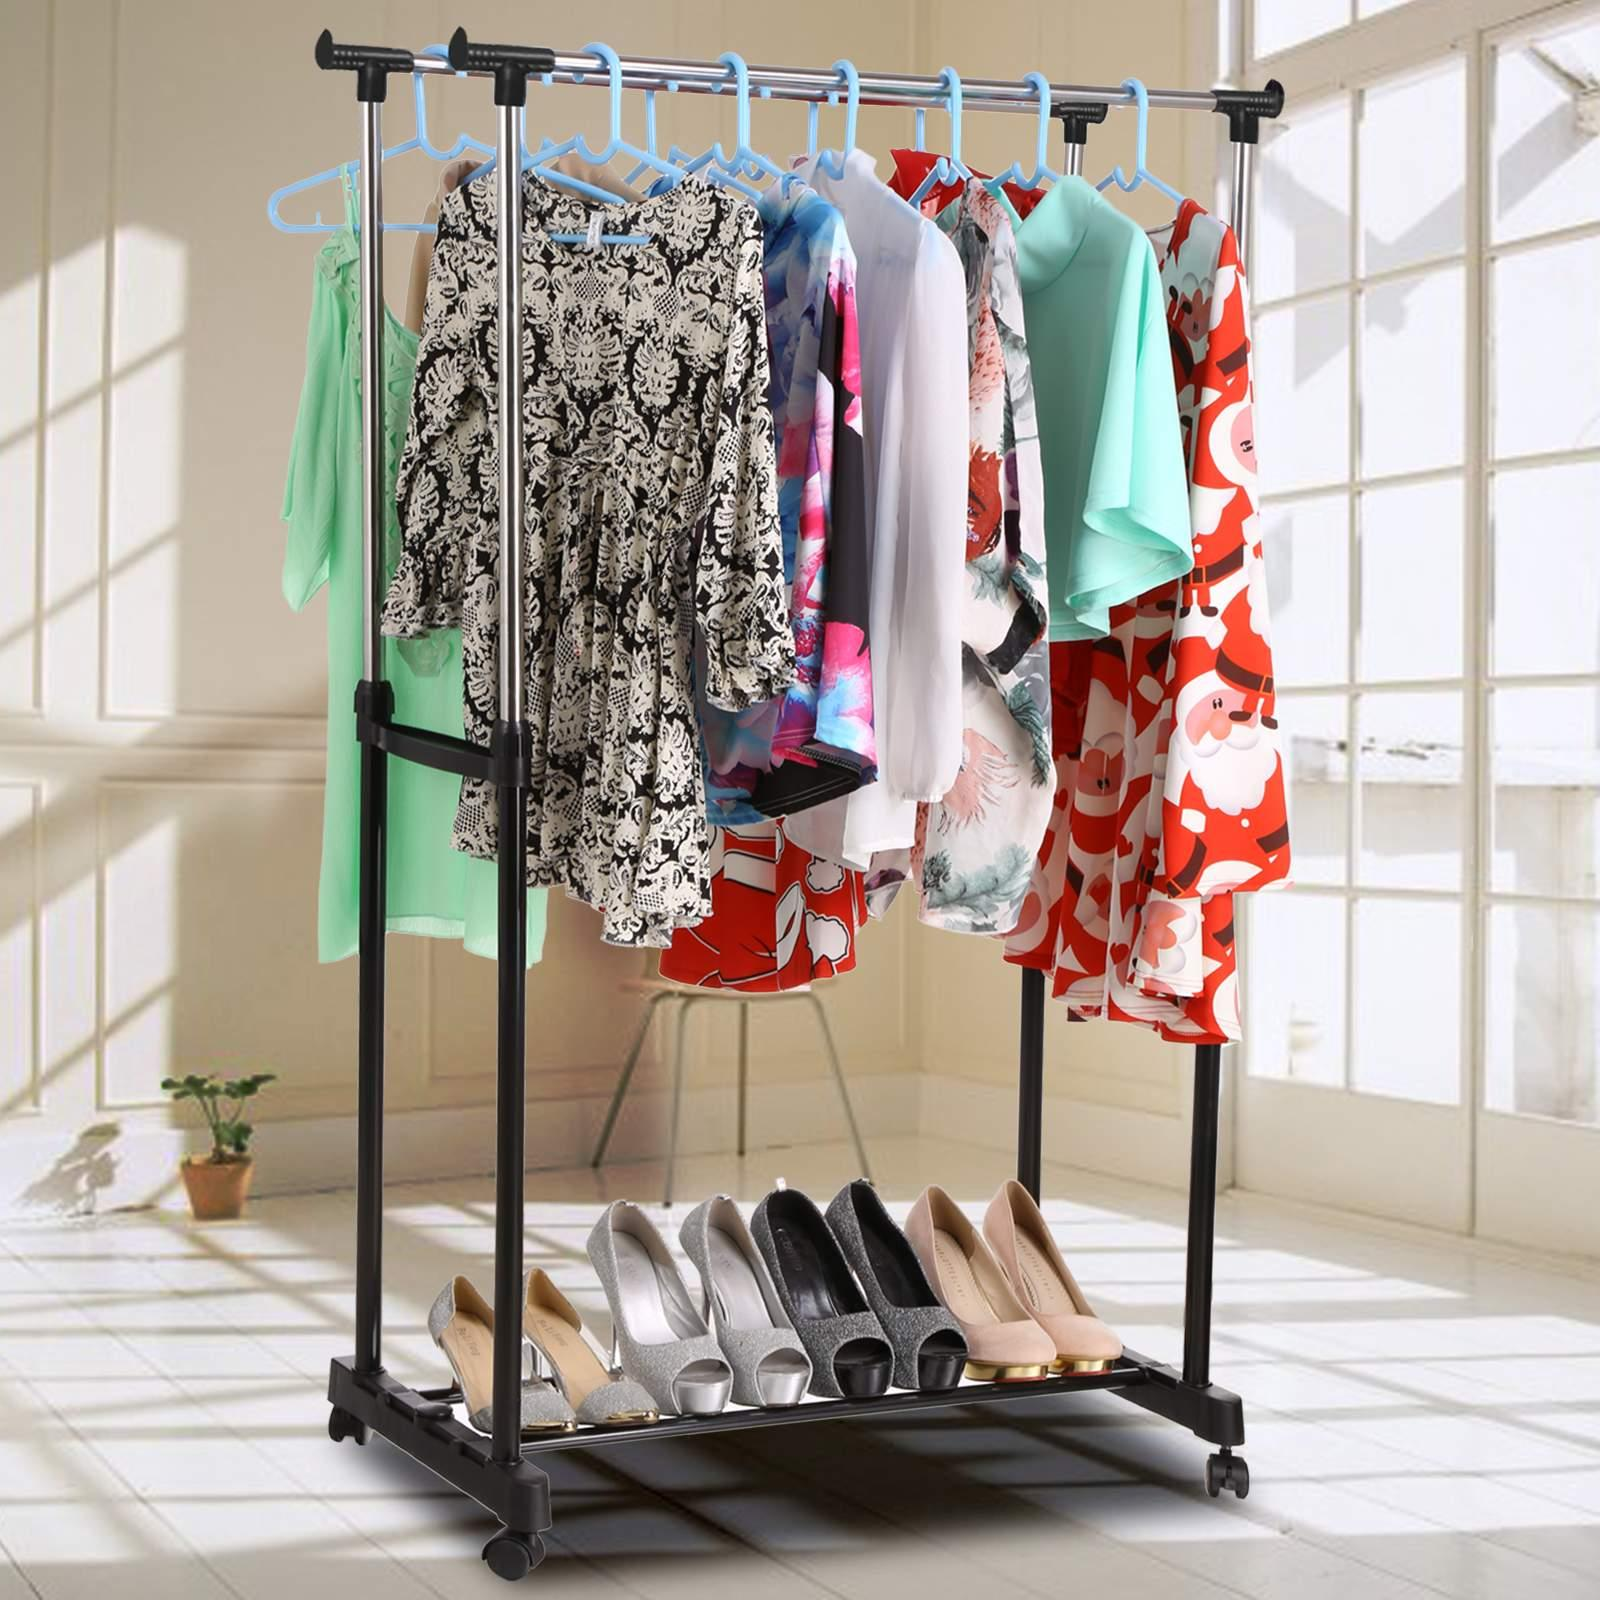 Holiday Special! Double Rail Garment Rack Adjustable Rolling Clothes Drying Rack Laundry Hanger